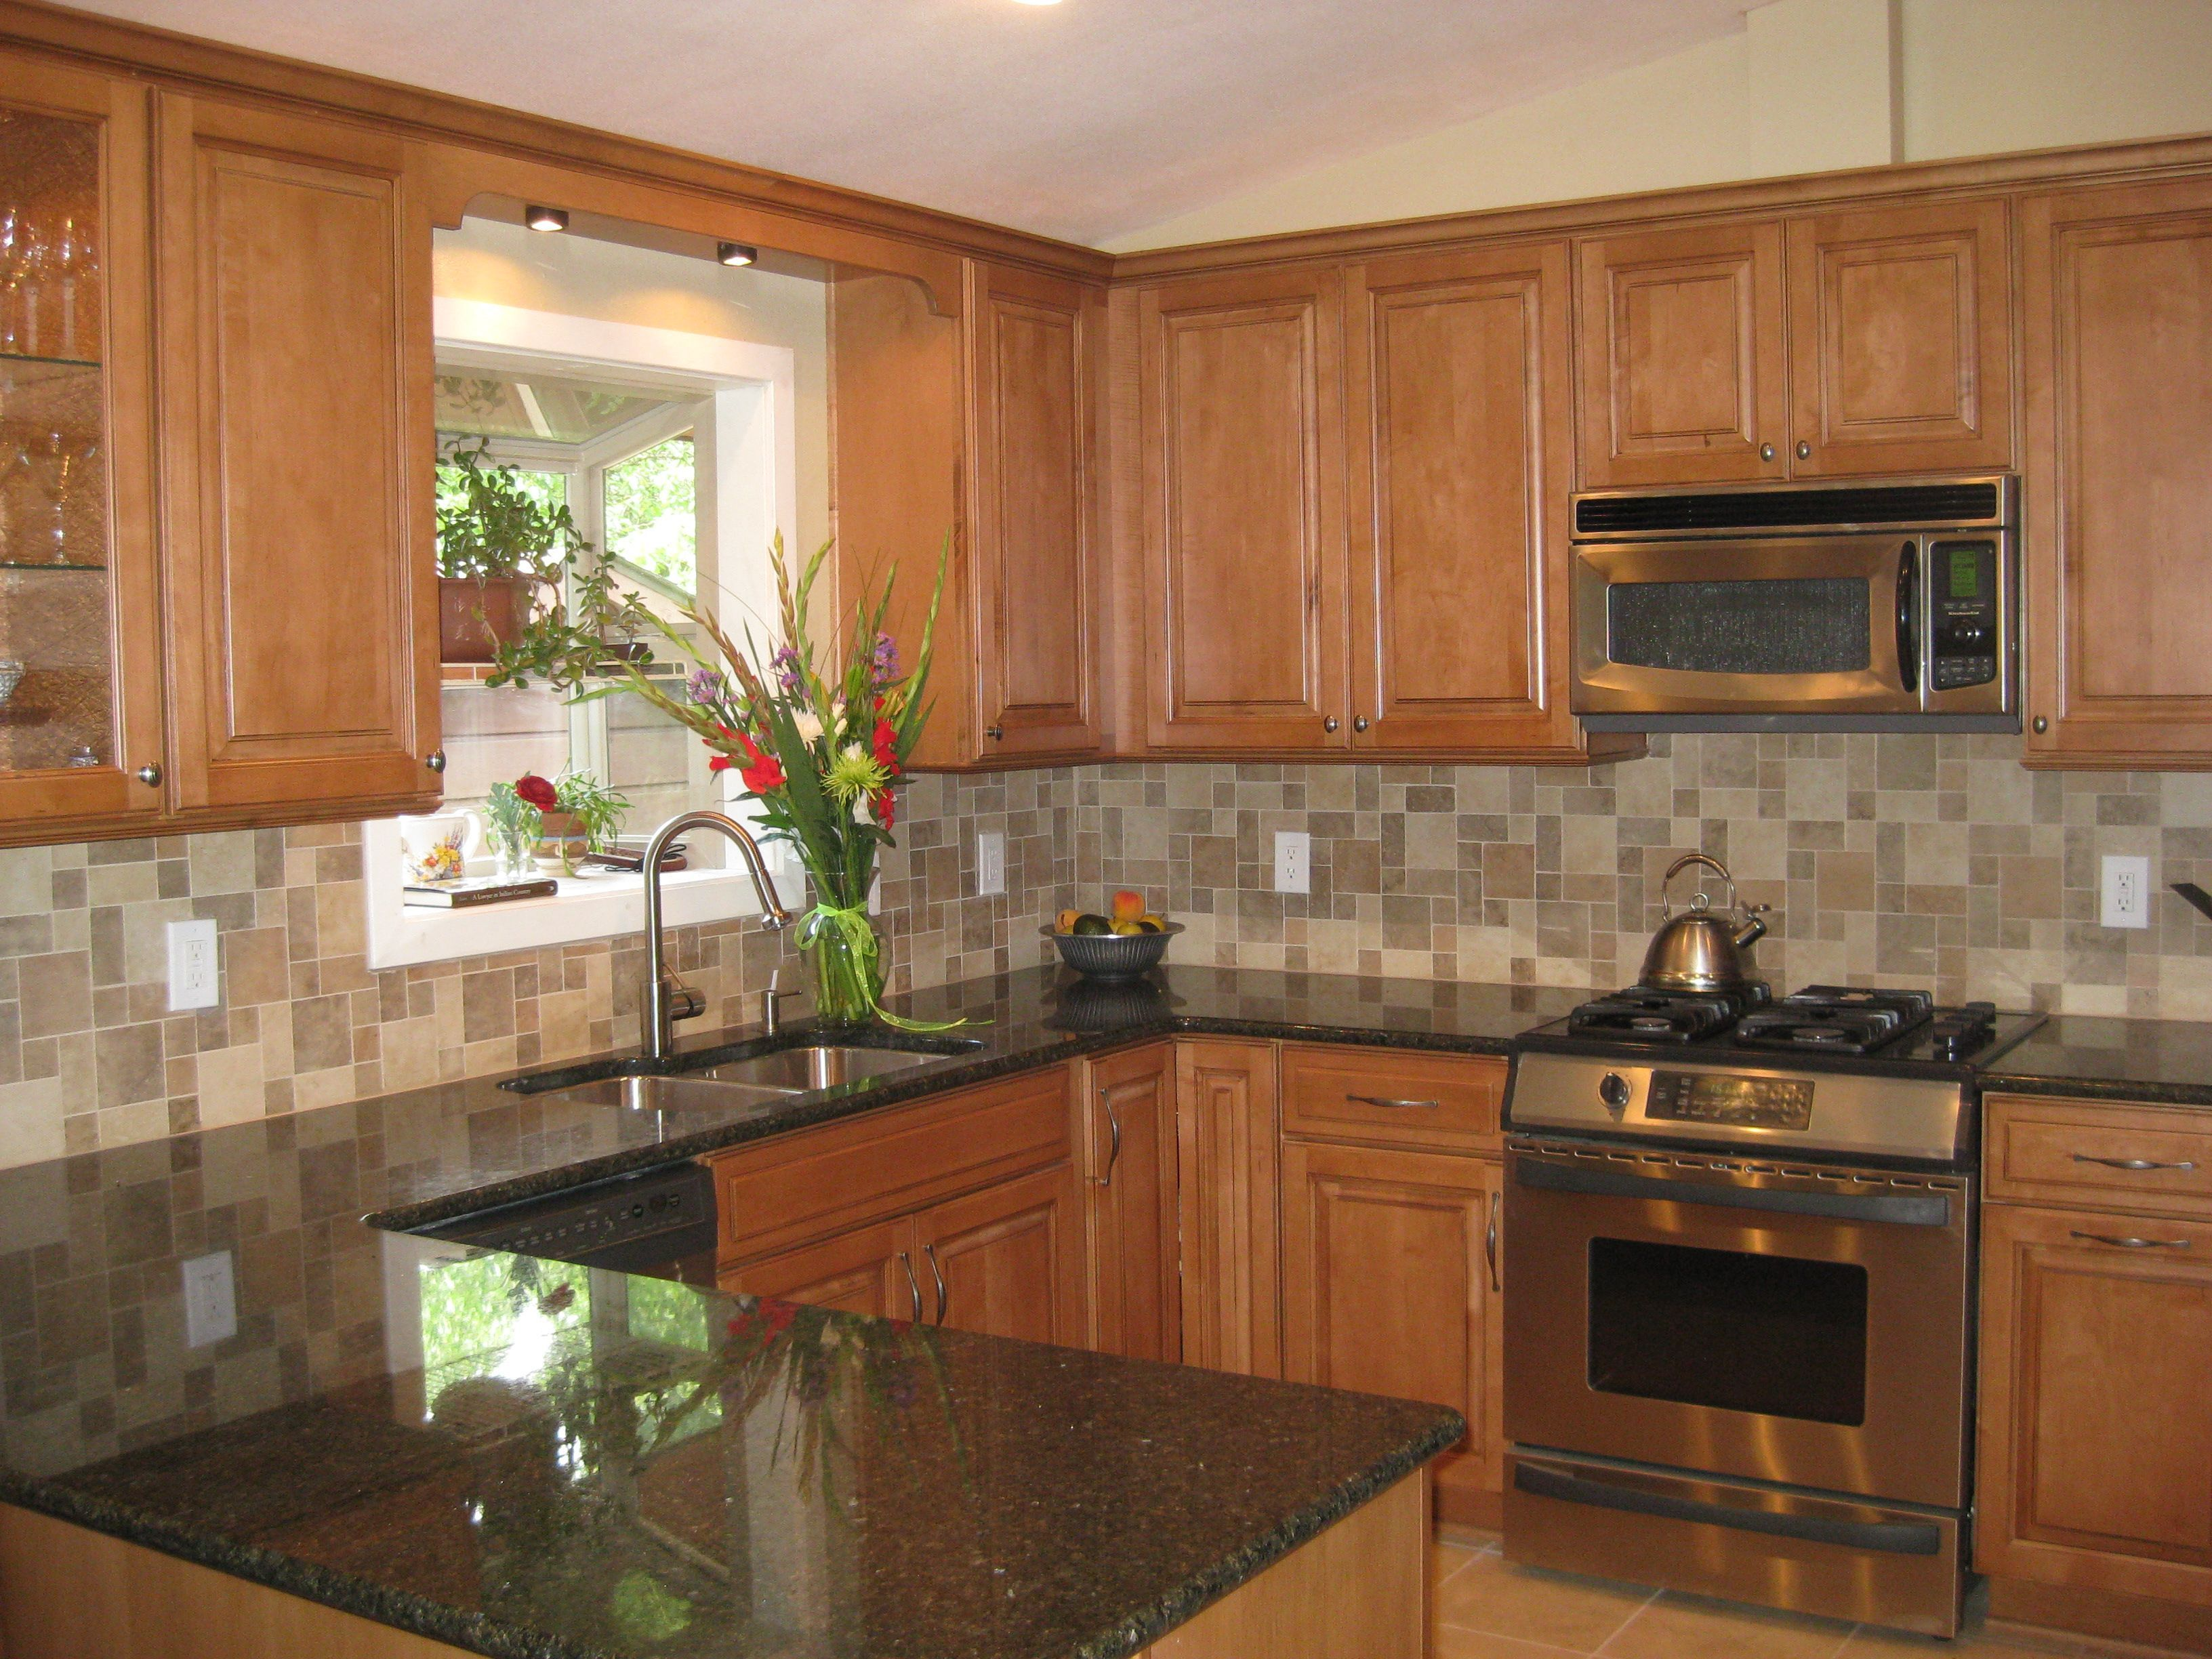 Image Of Maple Kitchen Cabinets Maple Is The Very Best Option For Open Spaces As It Suppl Trendy Kitchen Backsplash Maple Kitchen Cabinets Honey Oak Cabinets